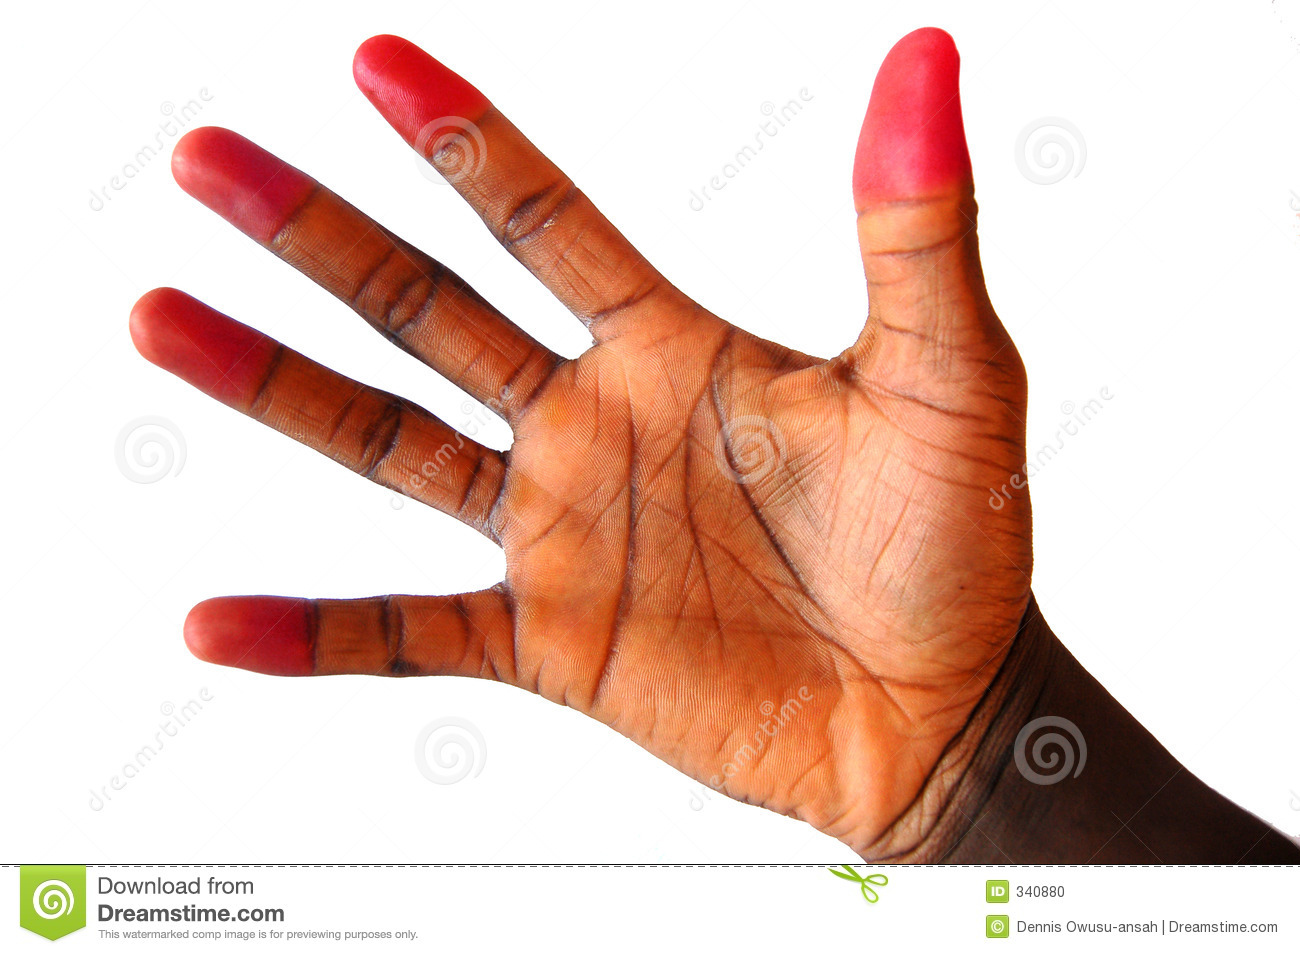 This is an image of a black hand with red coloured finger tips.